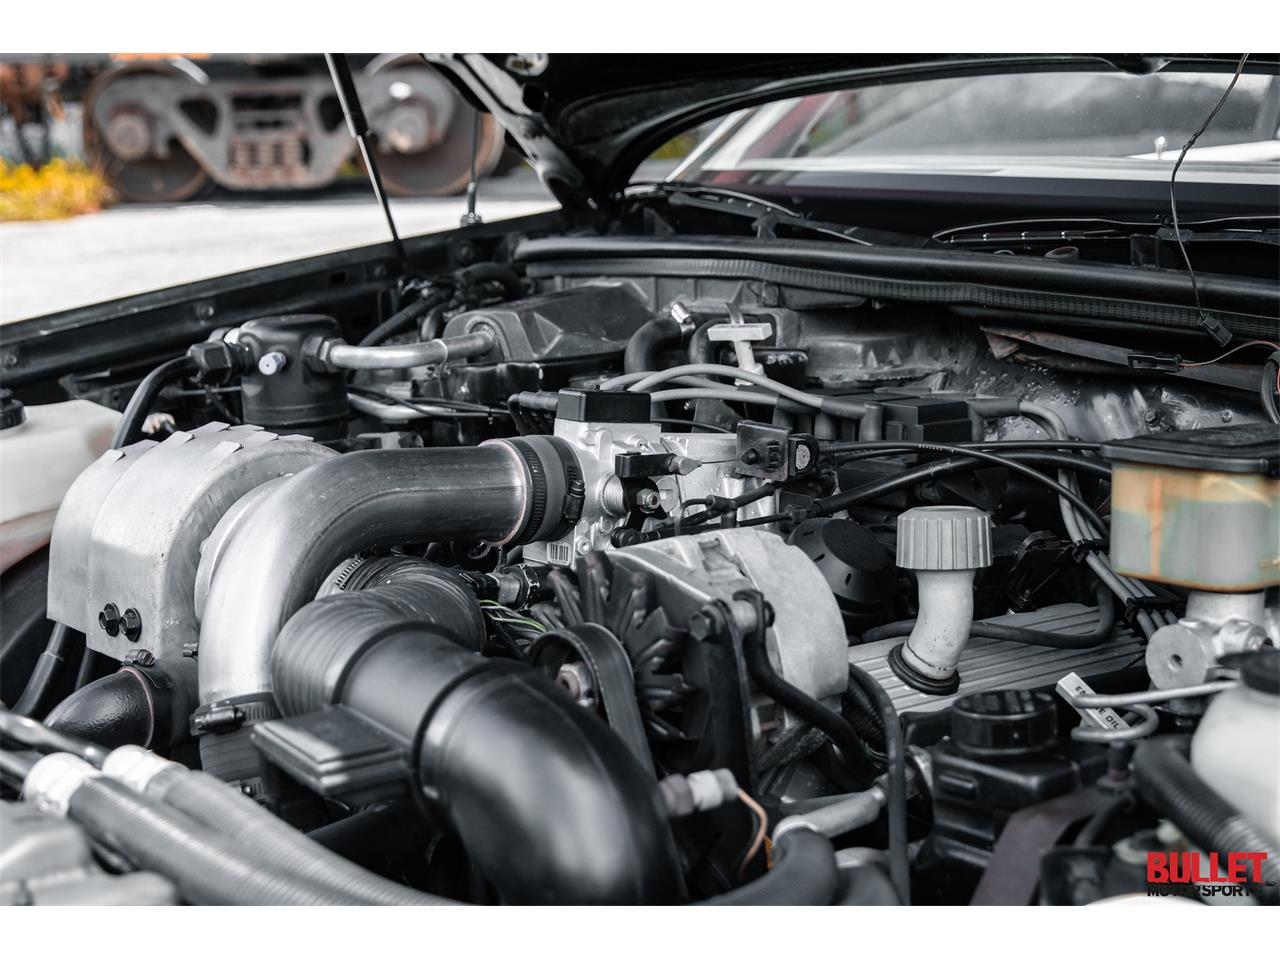 1987 Buick Grand National (CC-1230697) for sale in Fort Lauderdale, Florida